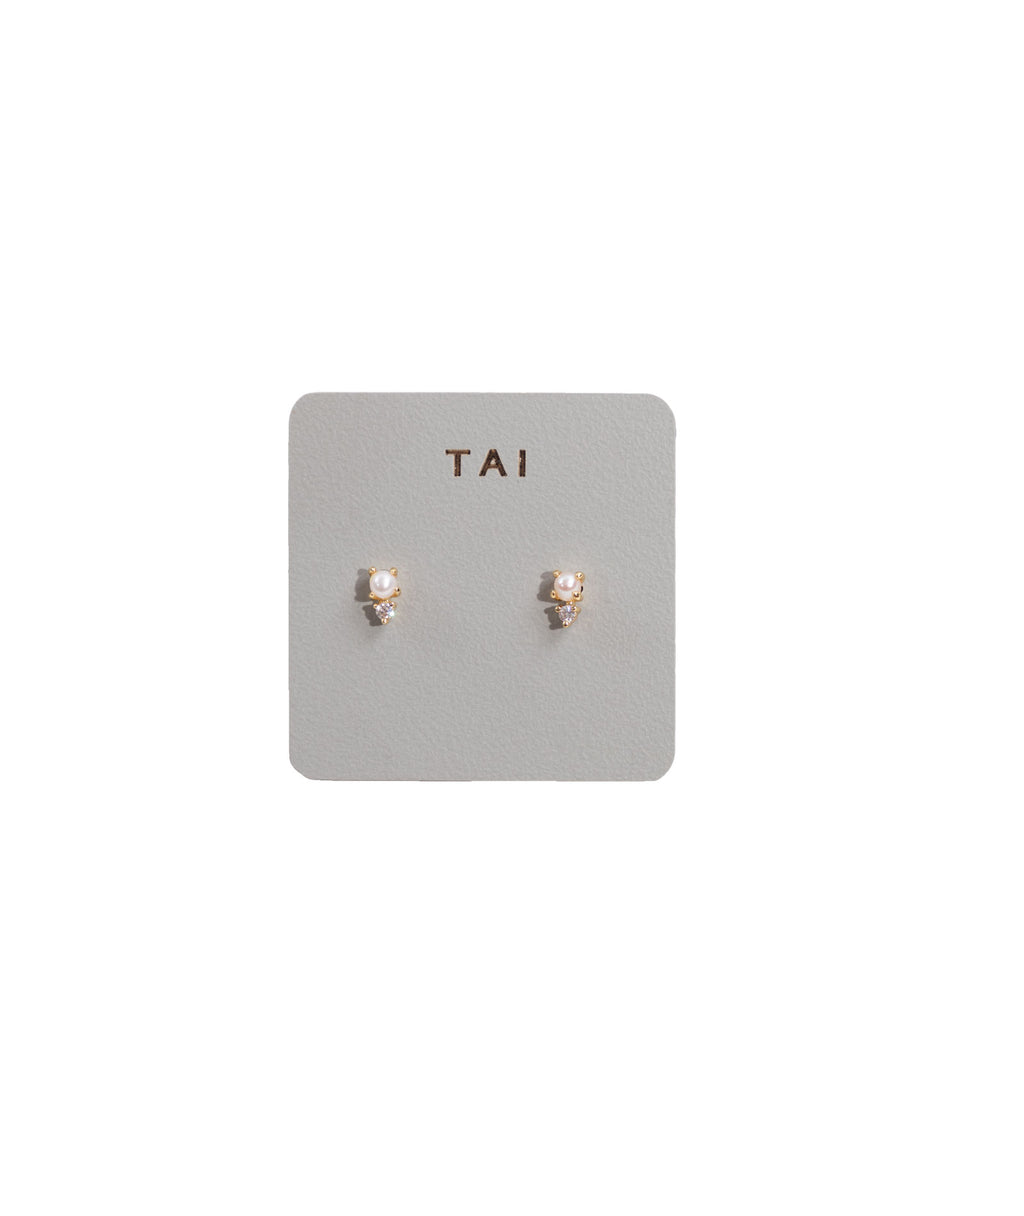 TAI Gold Pearl Stud Earrings